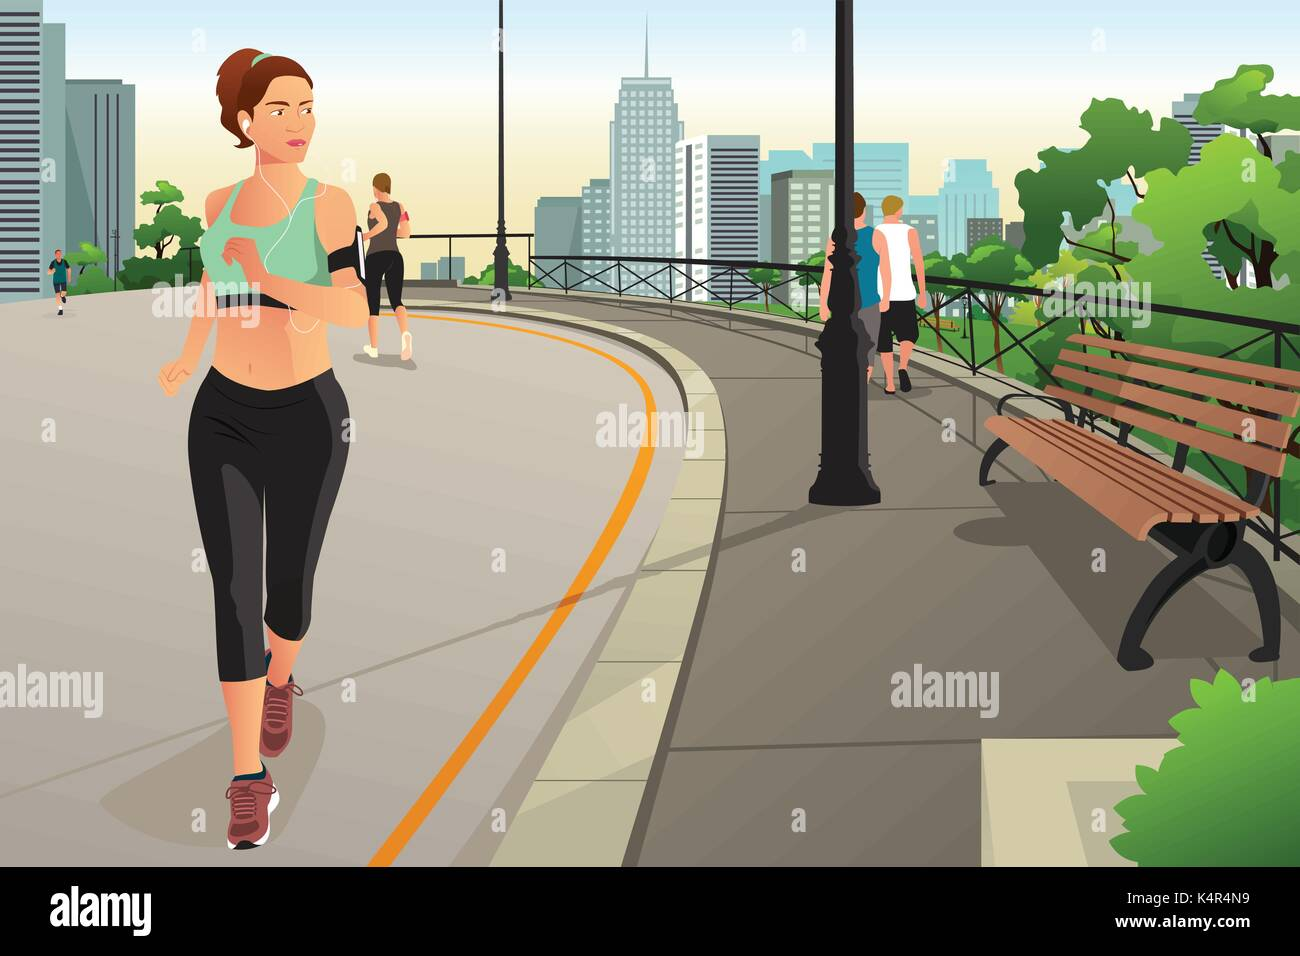 A vector illustration of Beautiful Woman Running in a Park in the City - Stock Vector